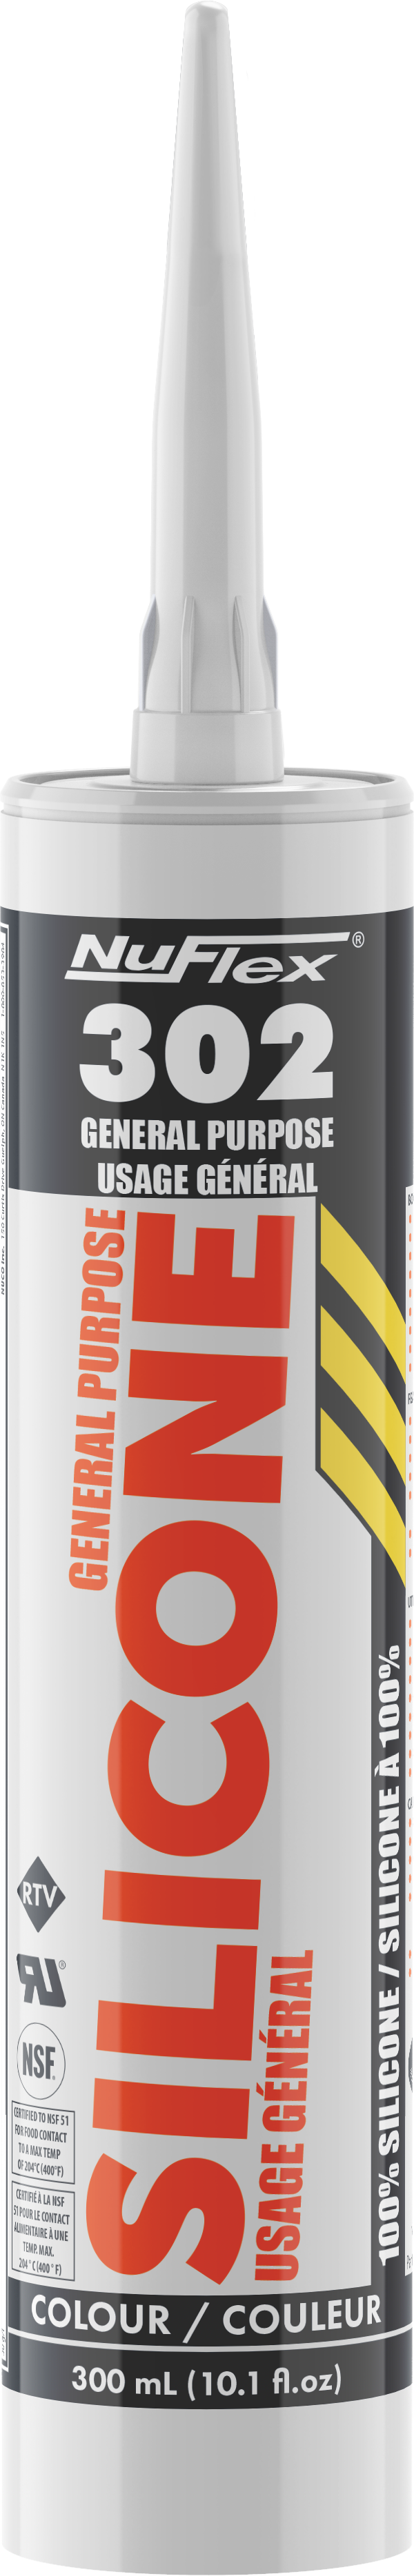 White NuFlex General Purpose 100% Silicone